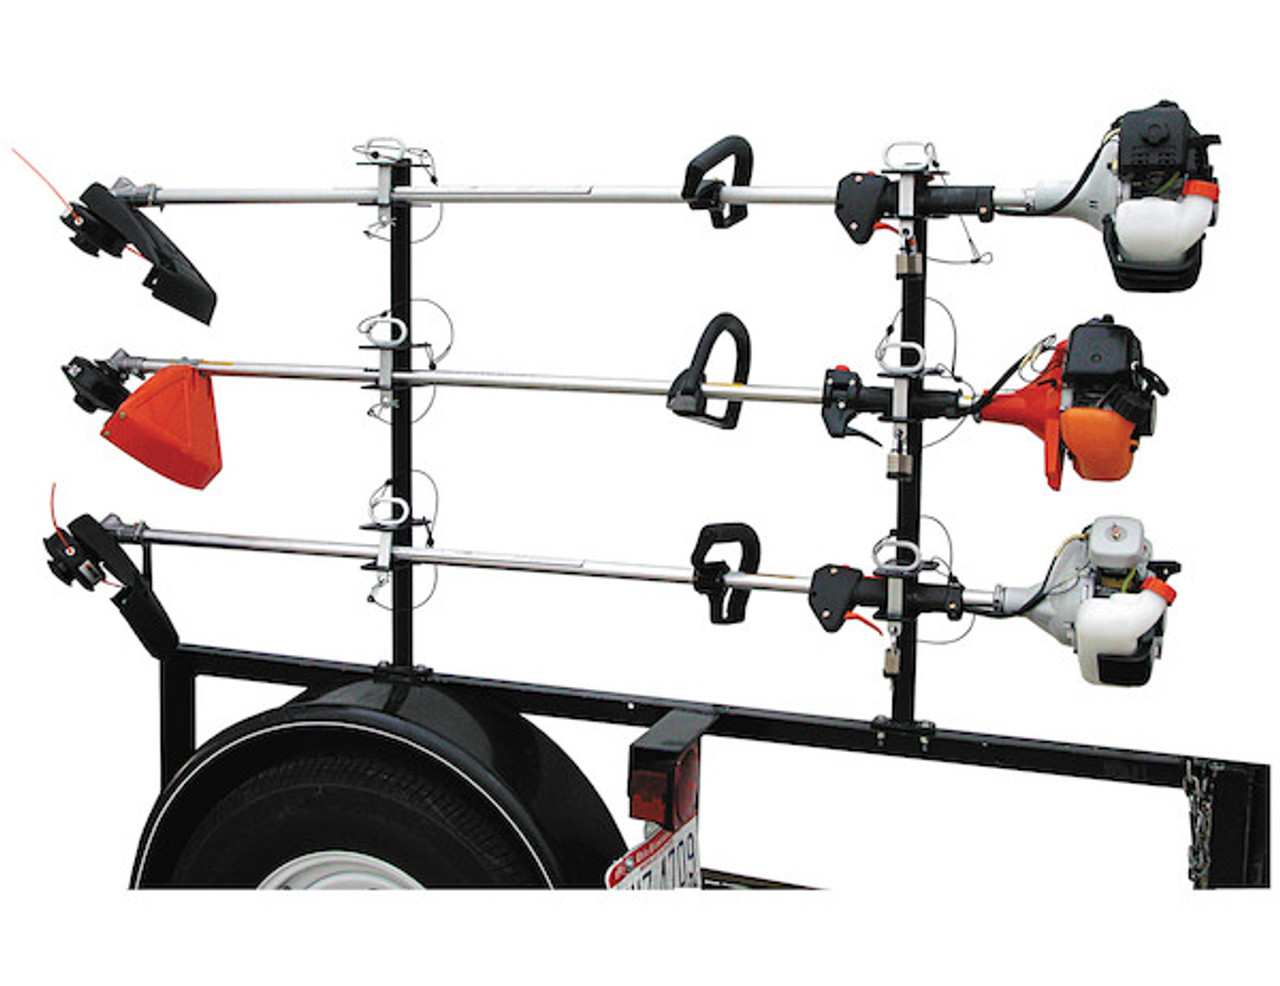 Buyers LT13 Lockable Trimmer Rack Carrier Holder for Up to 3 Trimmers for Trailers and Trucks Picture # 2